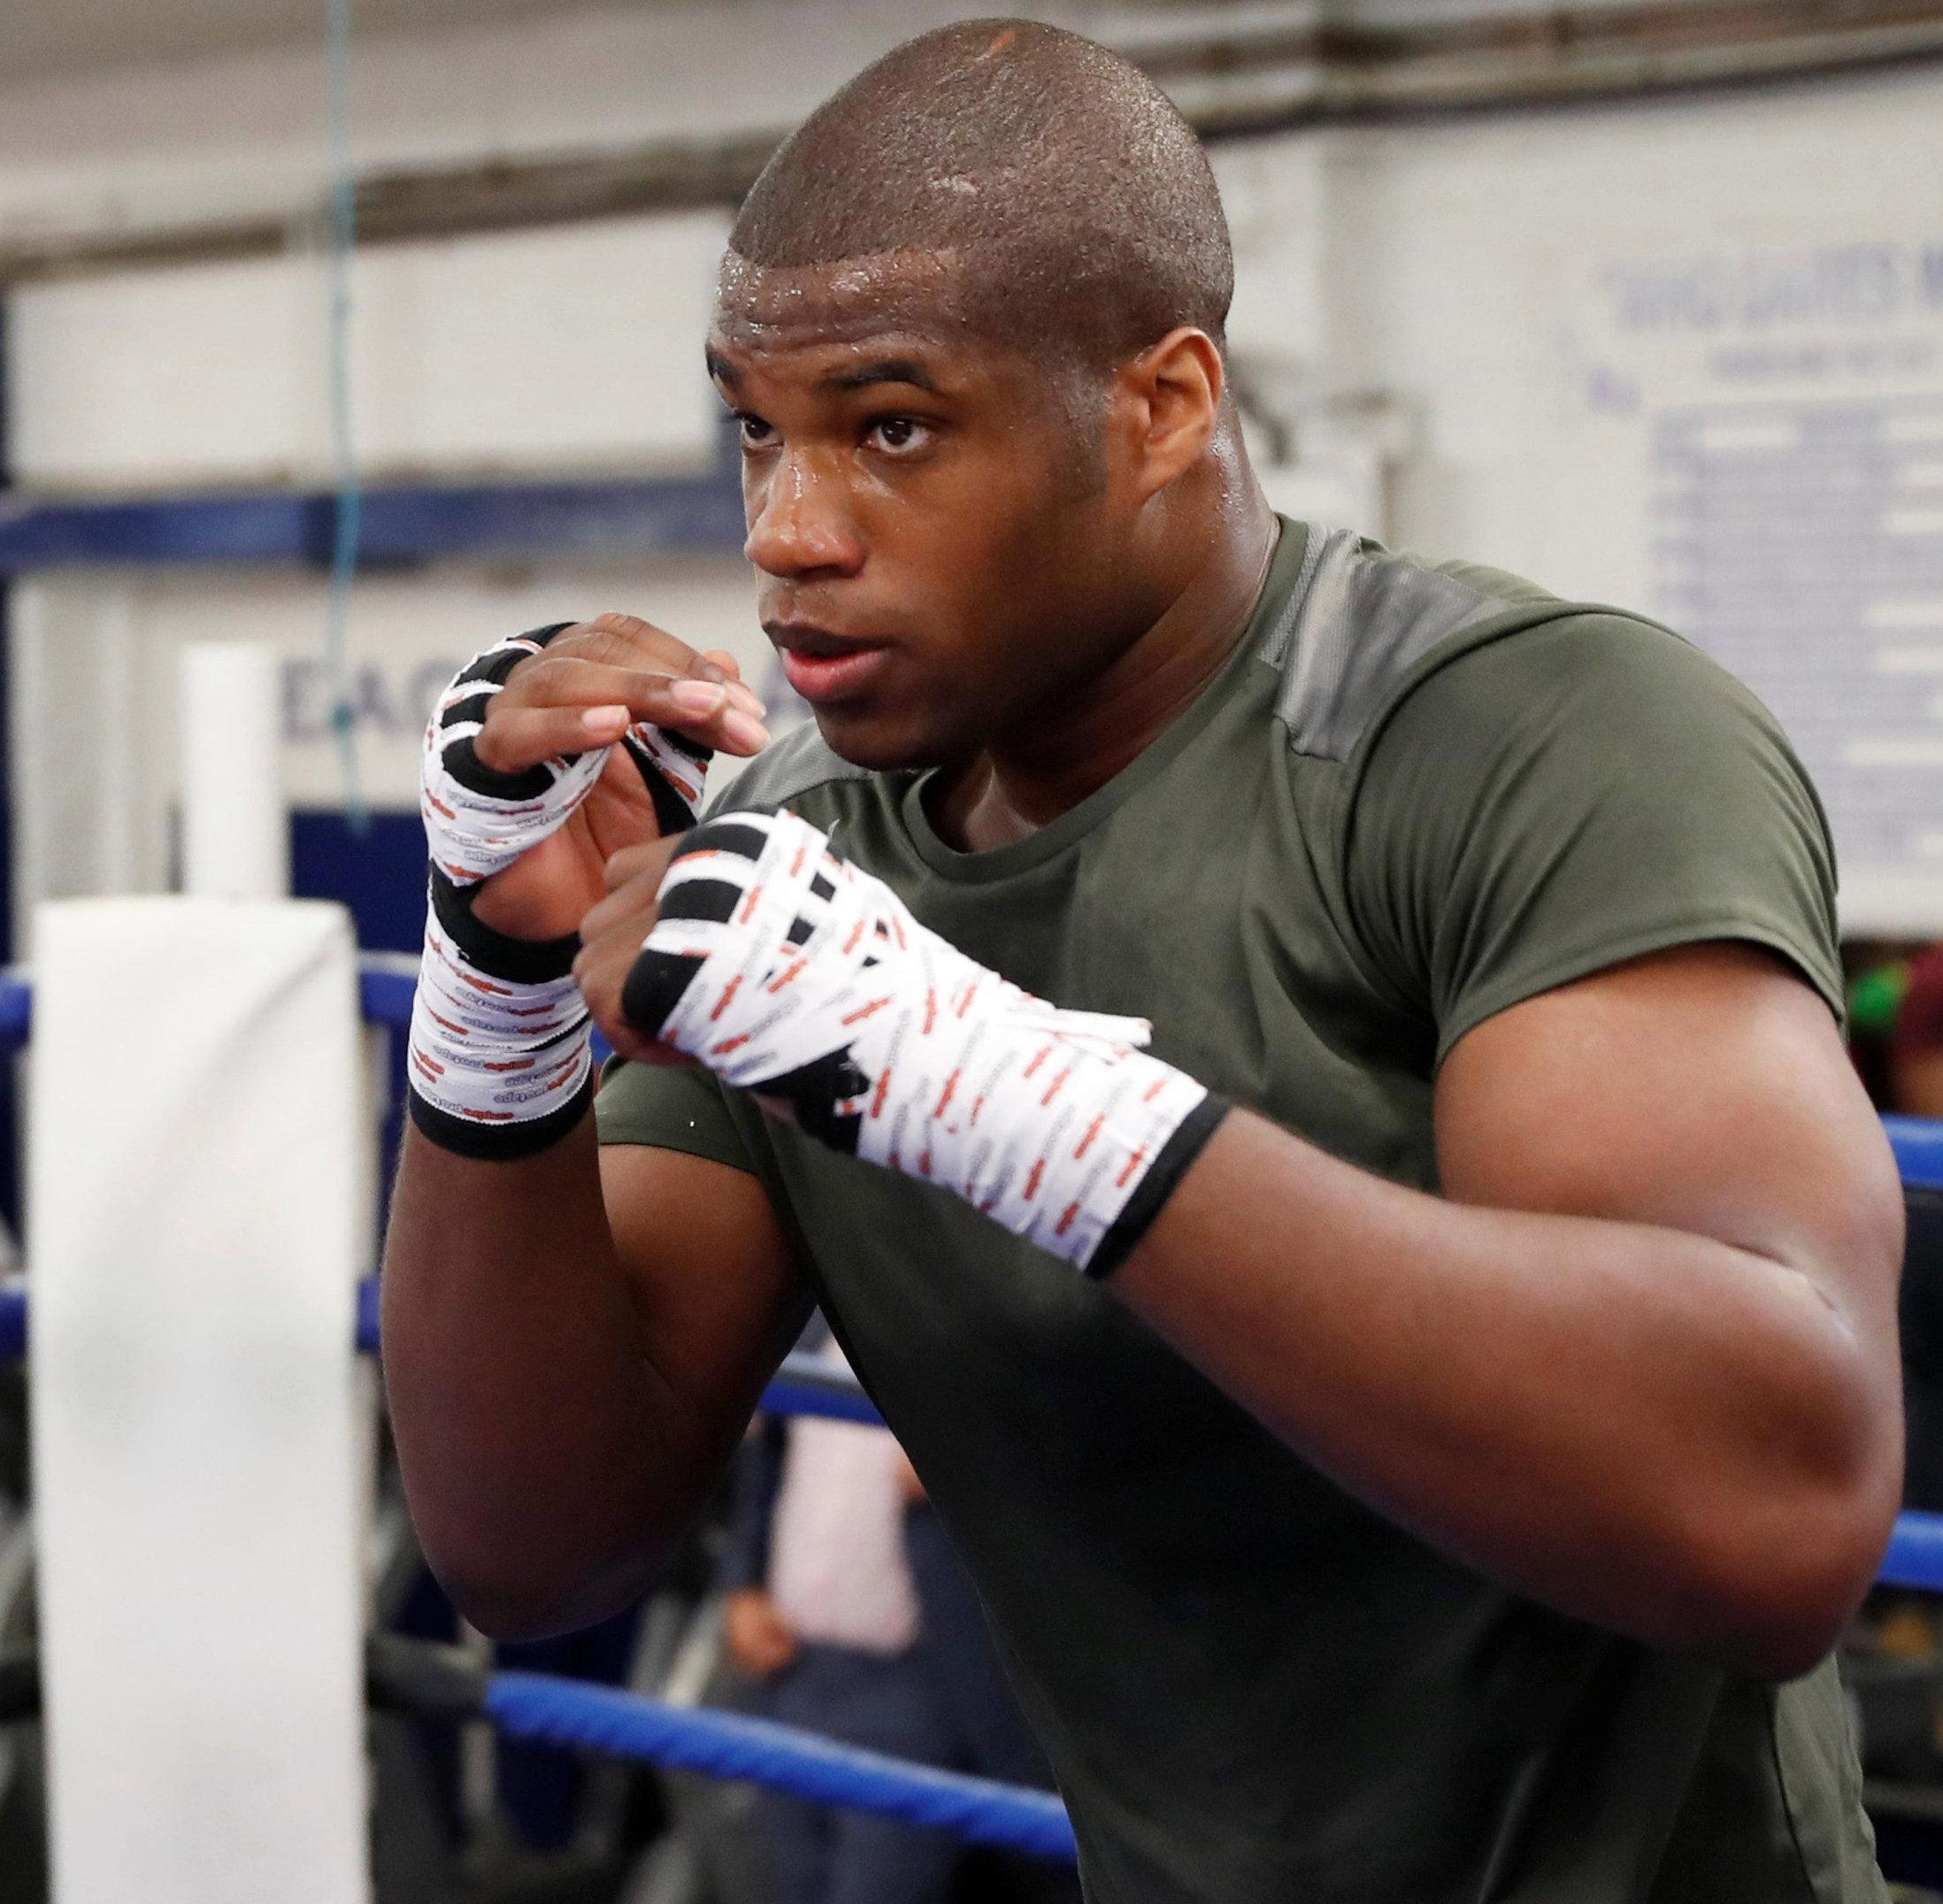 Exciting British heavyweight hope Daniel Dubois is in Russia